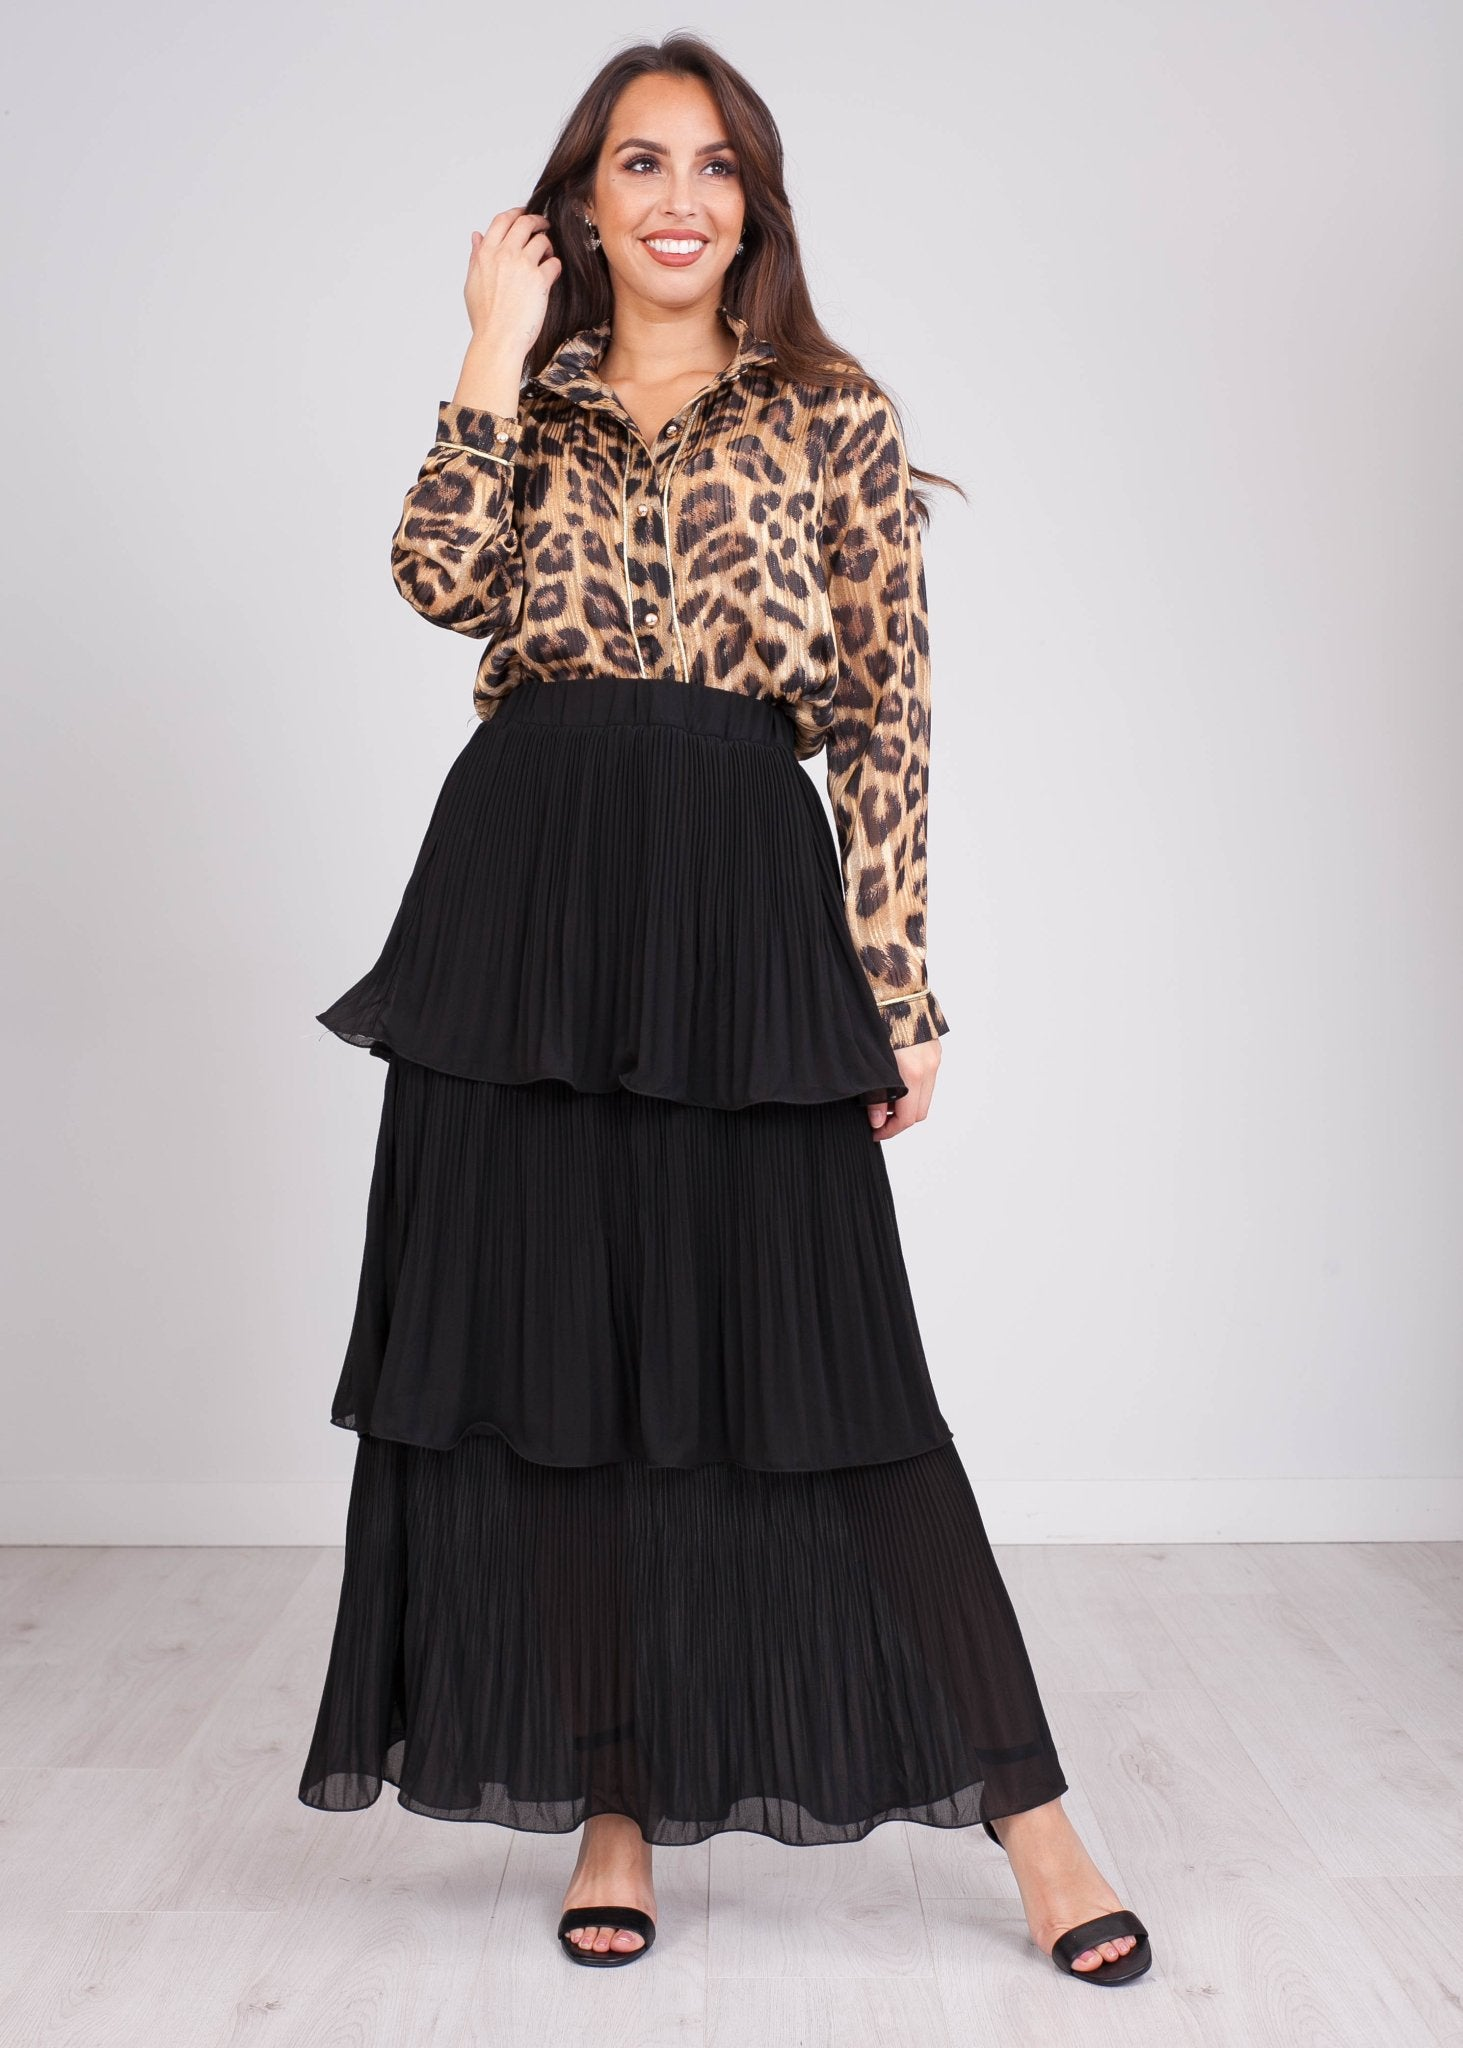 Emilia Black Tiered Skirt - The Walk in Wardrobe